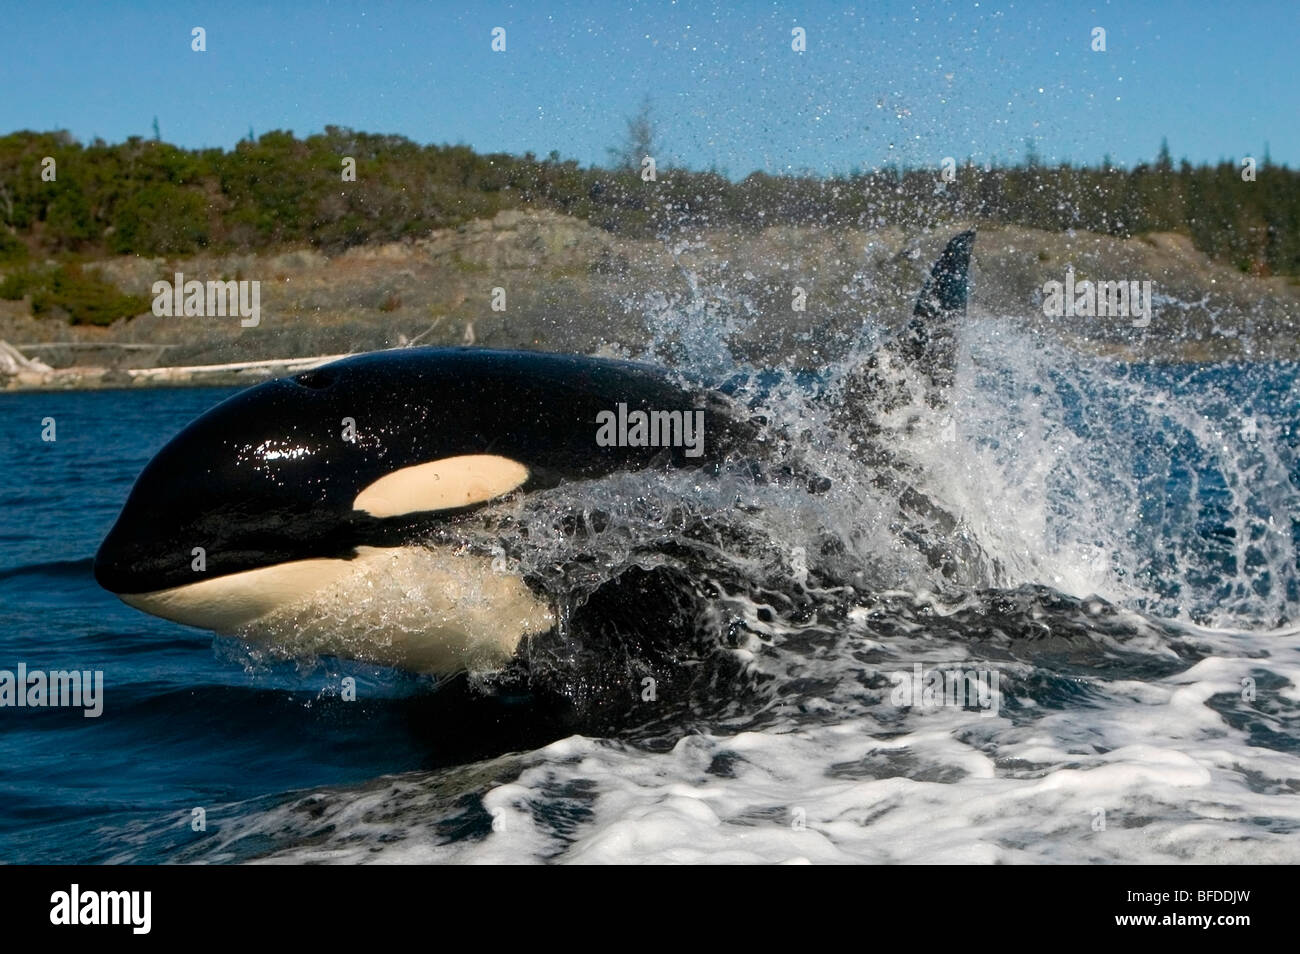 Killer whale surfacing with a splash, Port McNeill, British Columbia, Canada - Stock Image